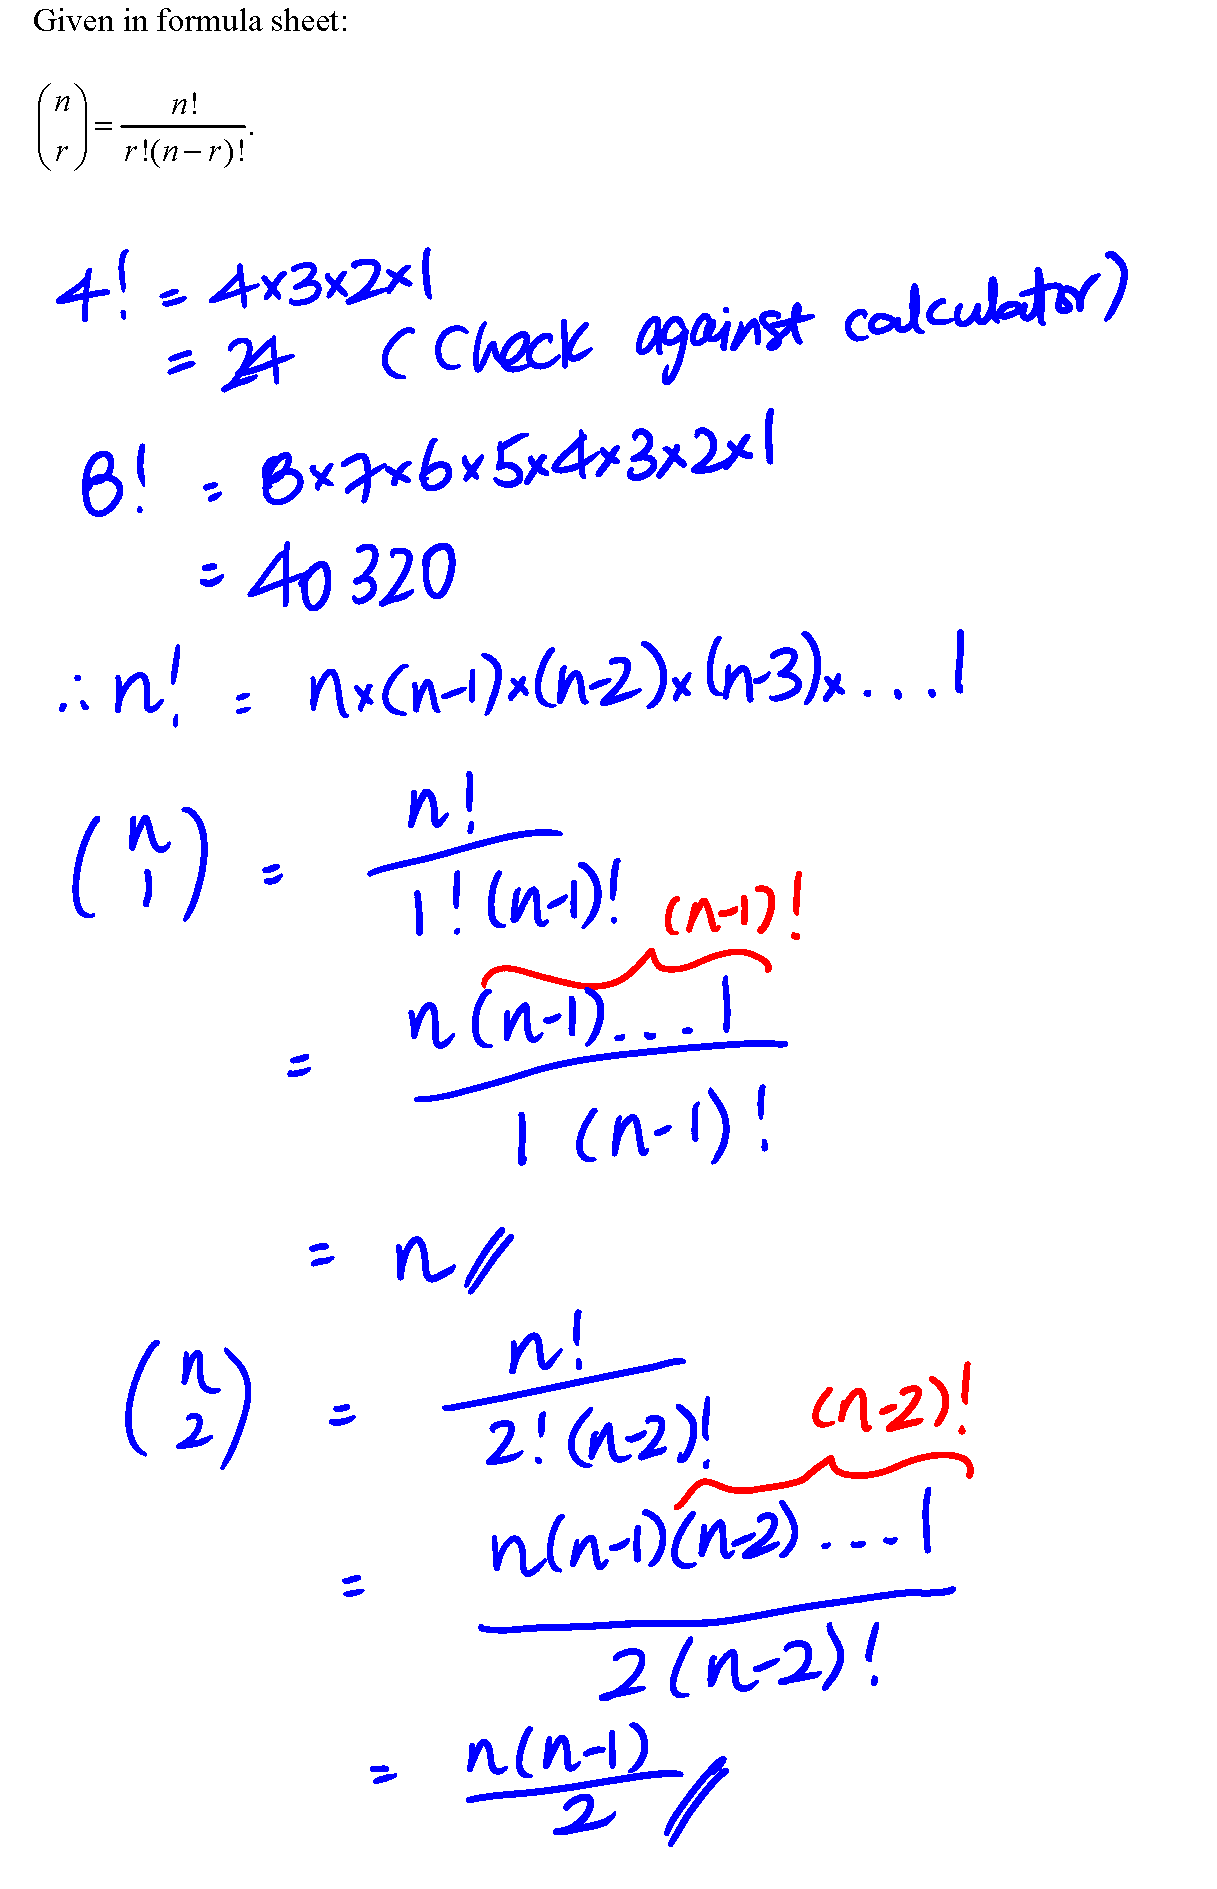 The Exclamation Mark In Binomial Theorem